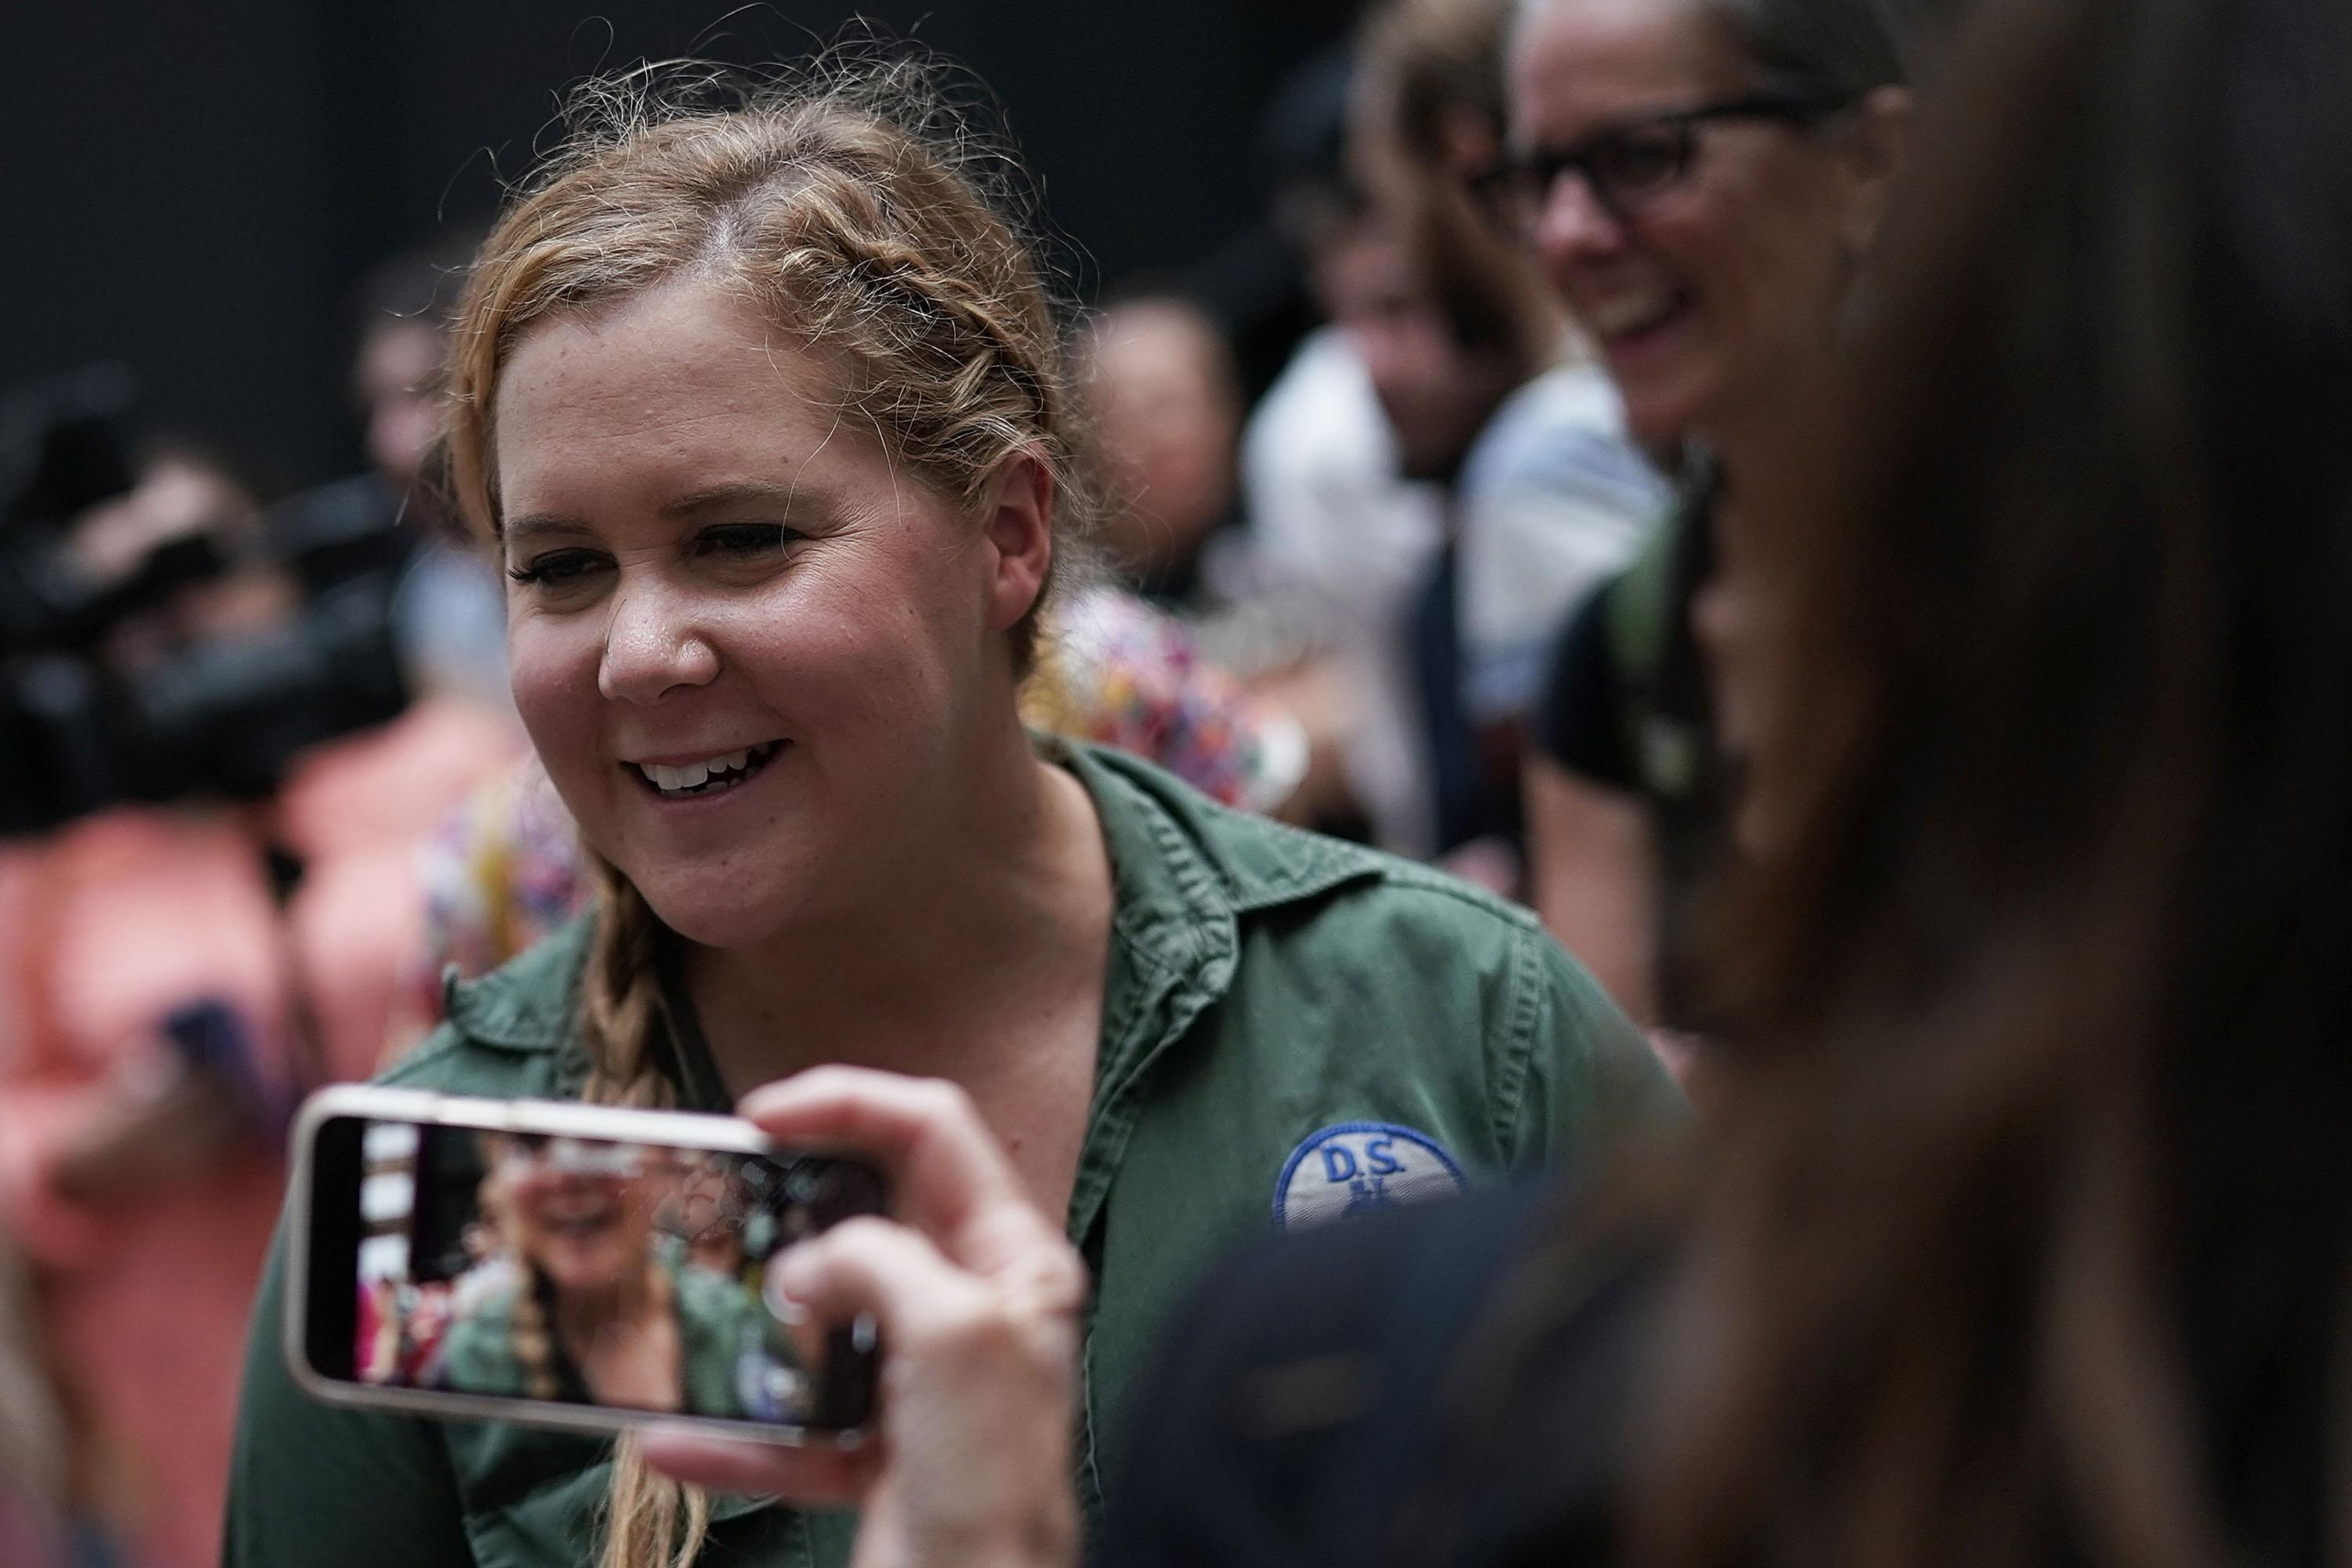 Comedian Amy Schumer in a protest against the confirmation of Supreme Court nominee Judge Brett Kavanaugh.